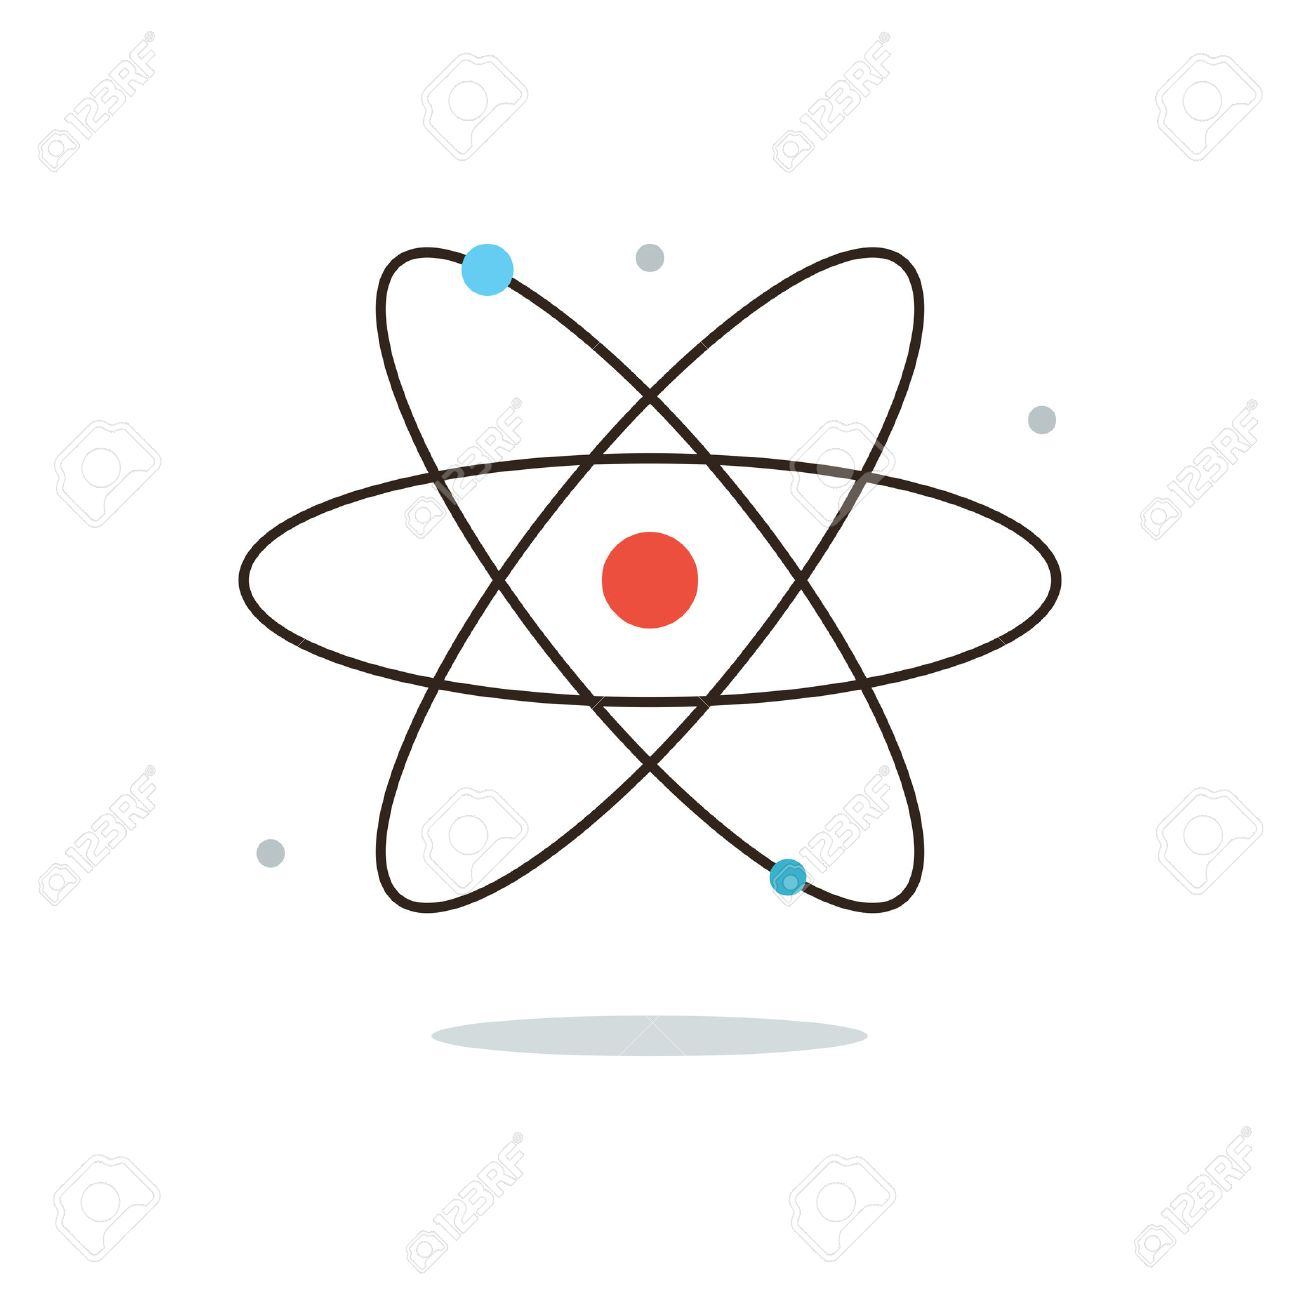 Collection of free download. Energy clipart atomic theory